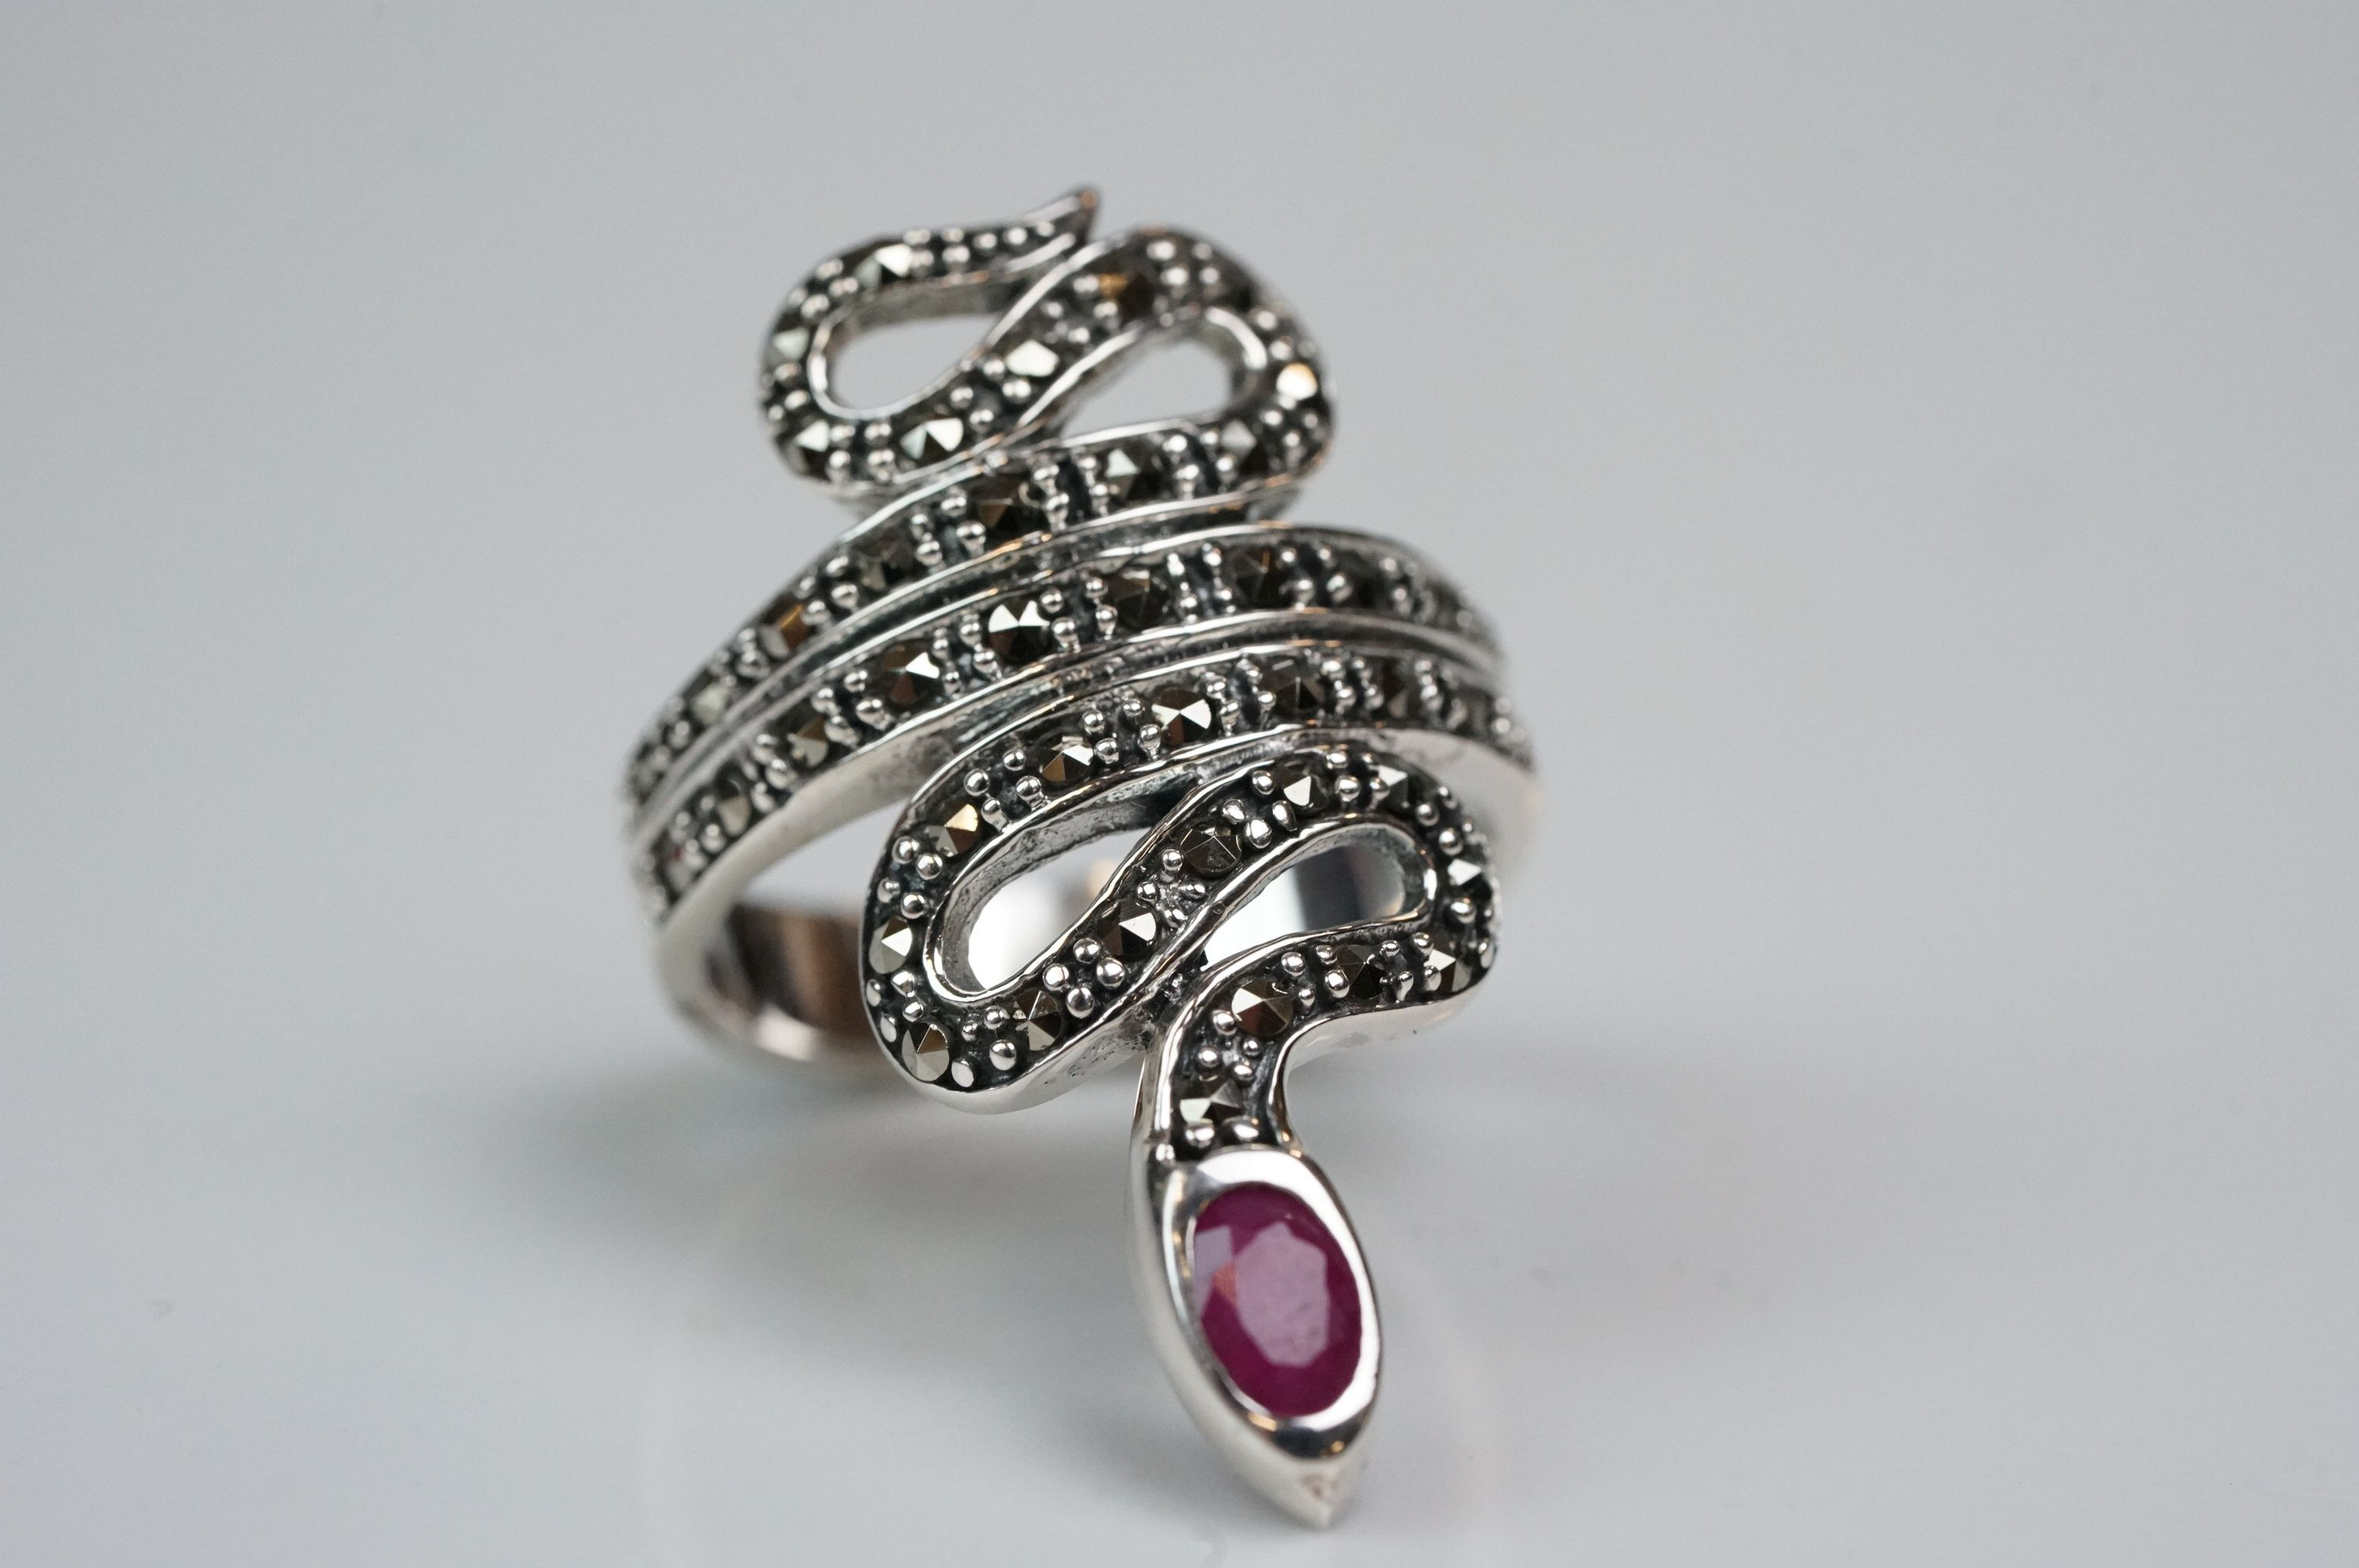 Silver dress ring in the form of a snake, set with marcasites and ruby